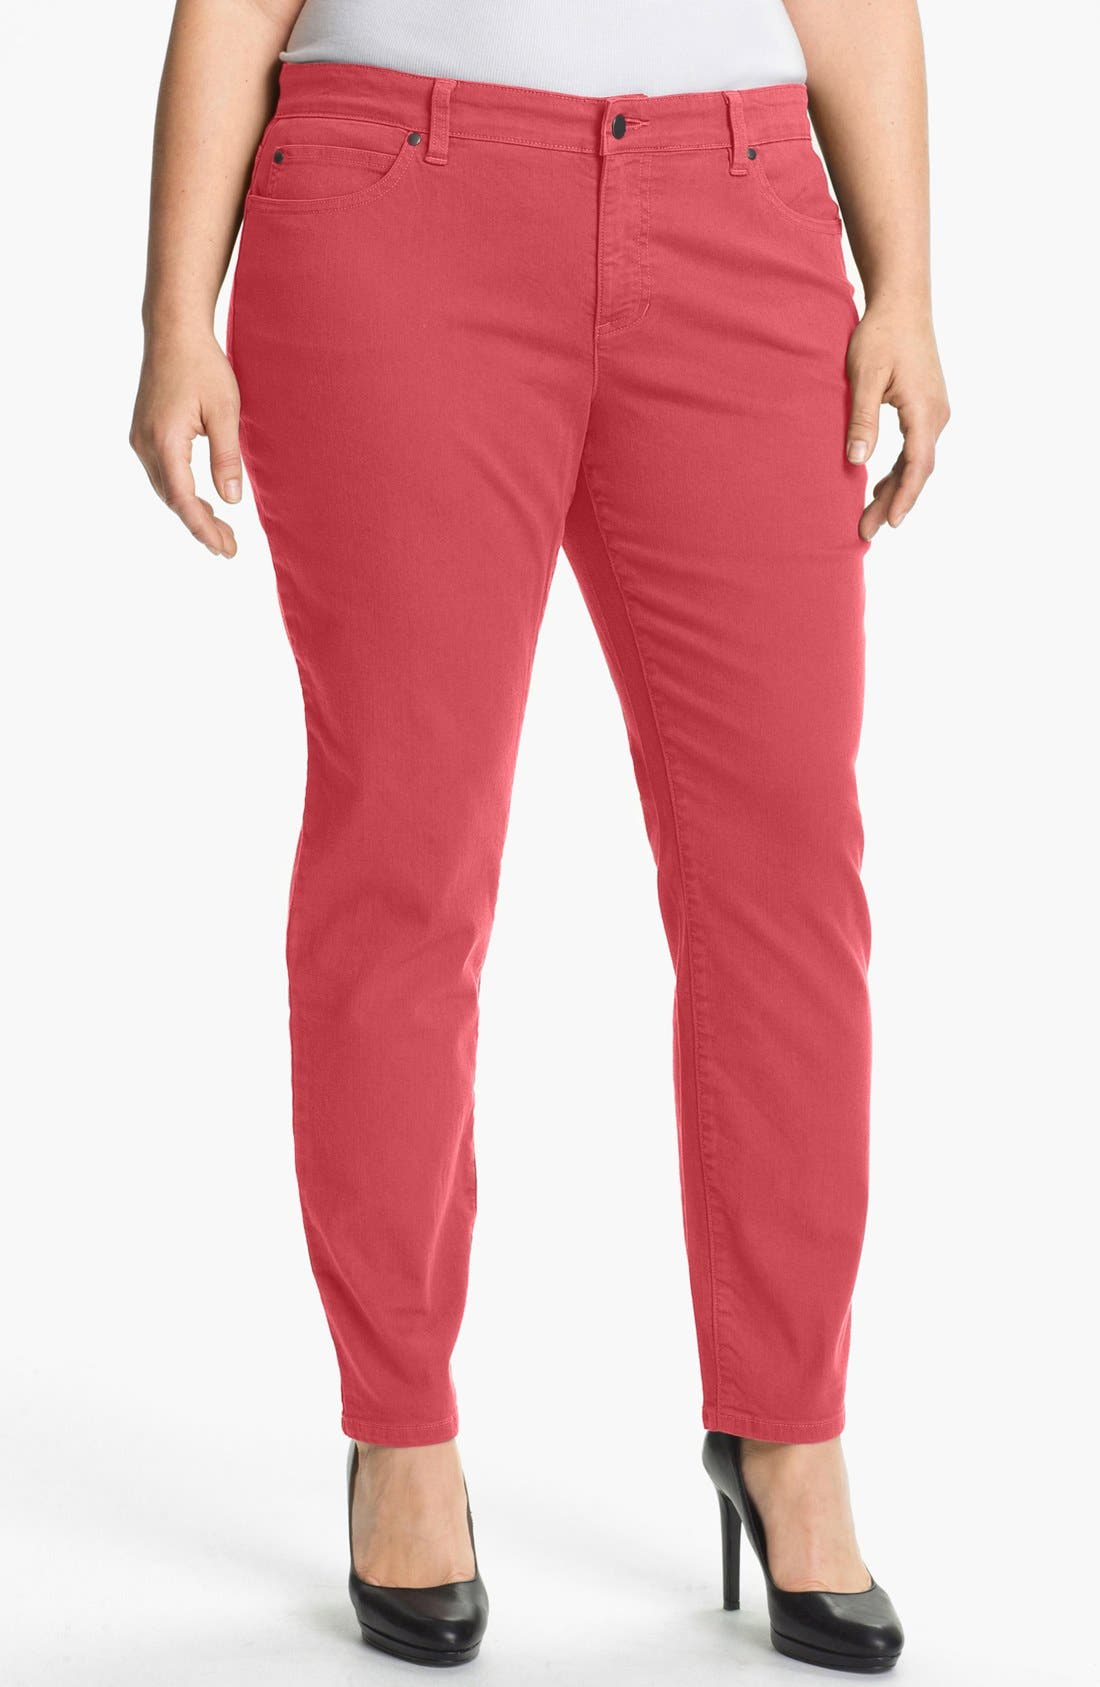 Alternate Image 1 Selected - Eileen Fisher Slim Ankle Jeans (Plus Size)